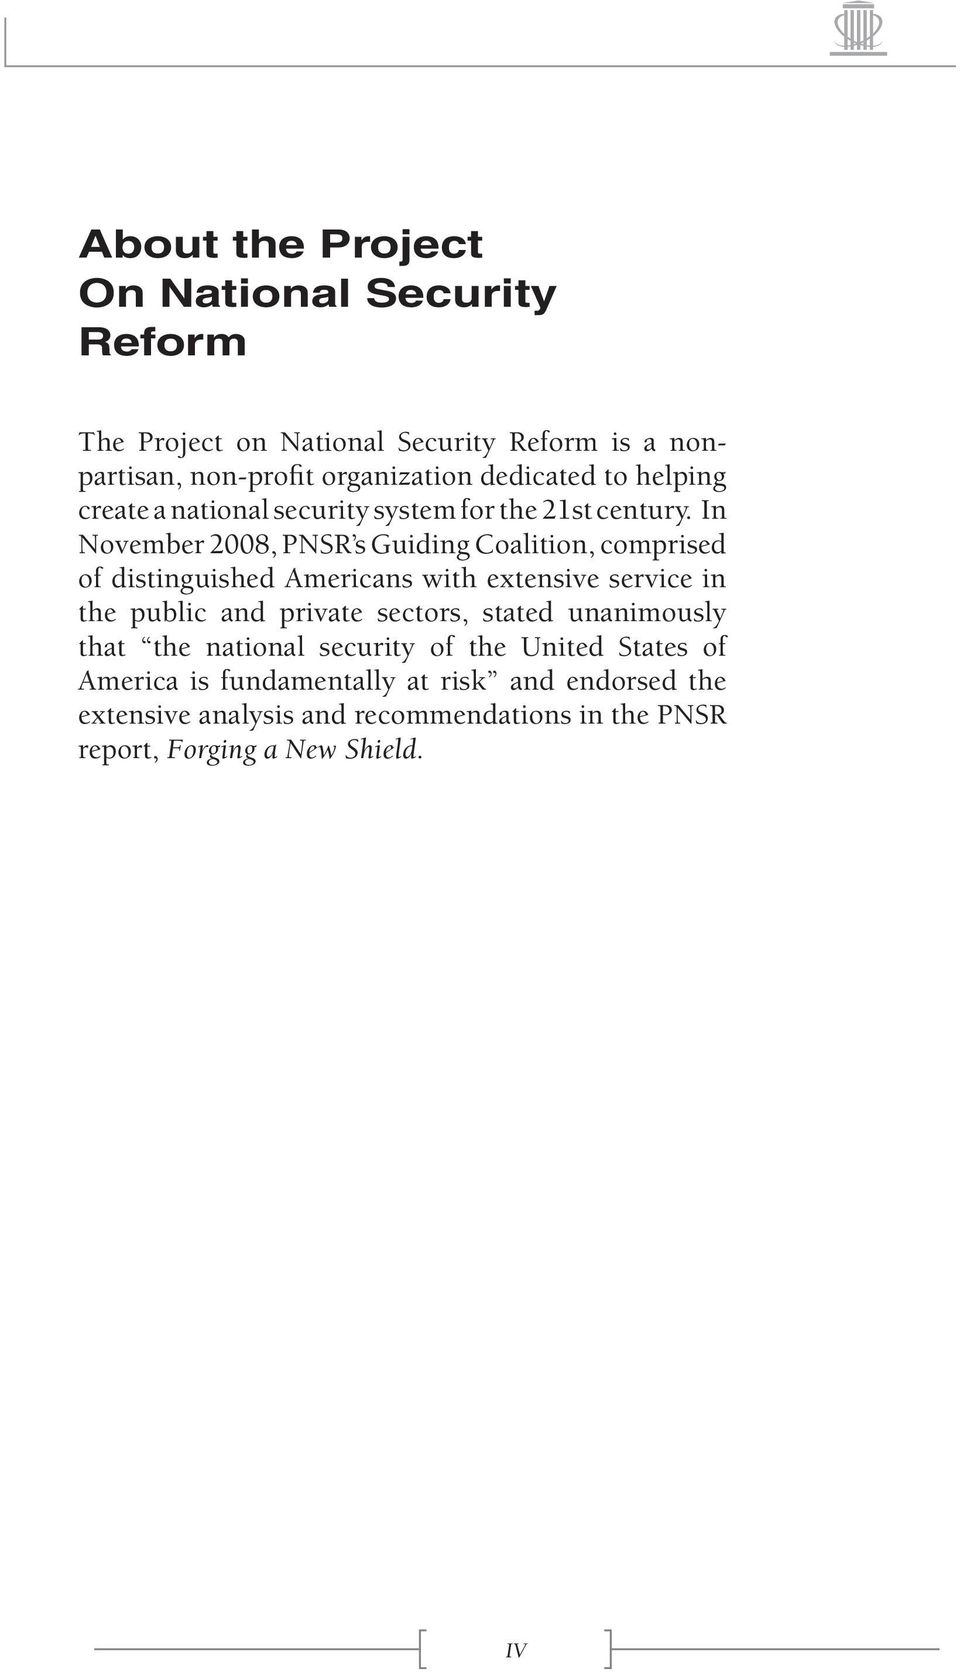 In November 2008, PNSR s Guiding Coalition, comprised of distinguished Americans with extensive service in the public and private